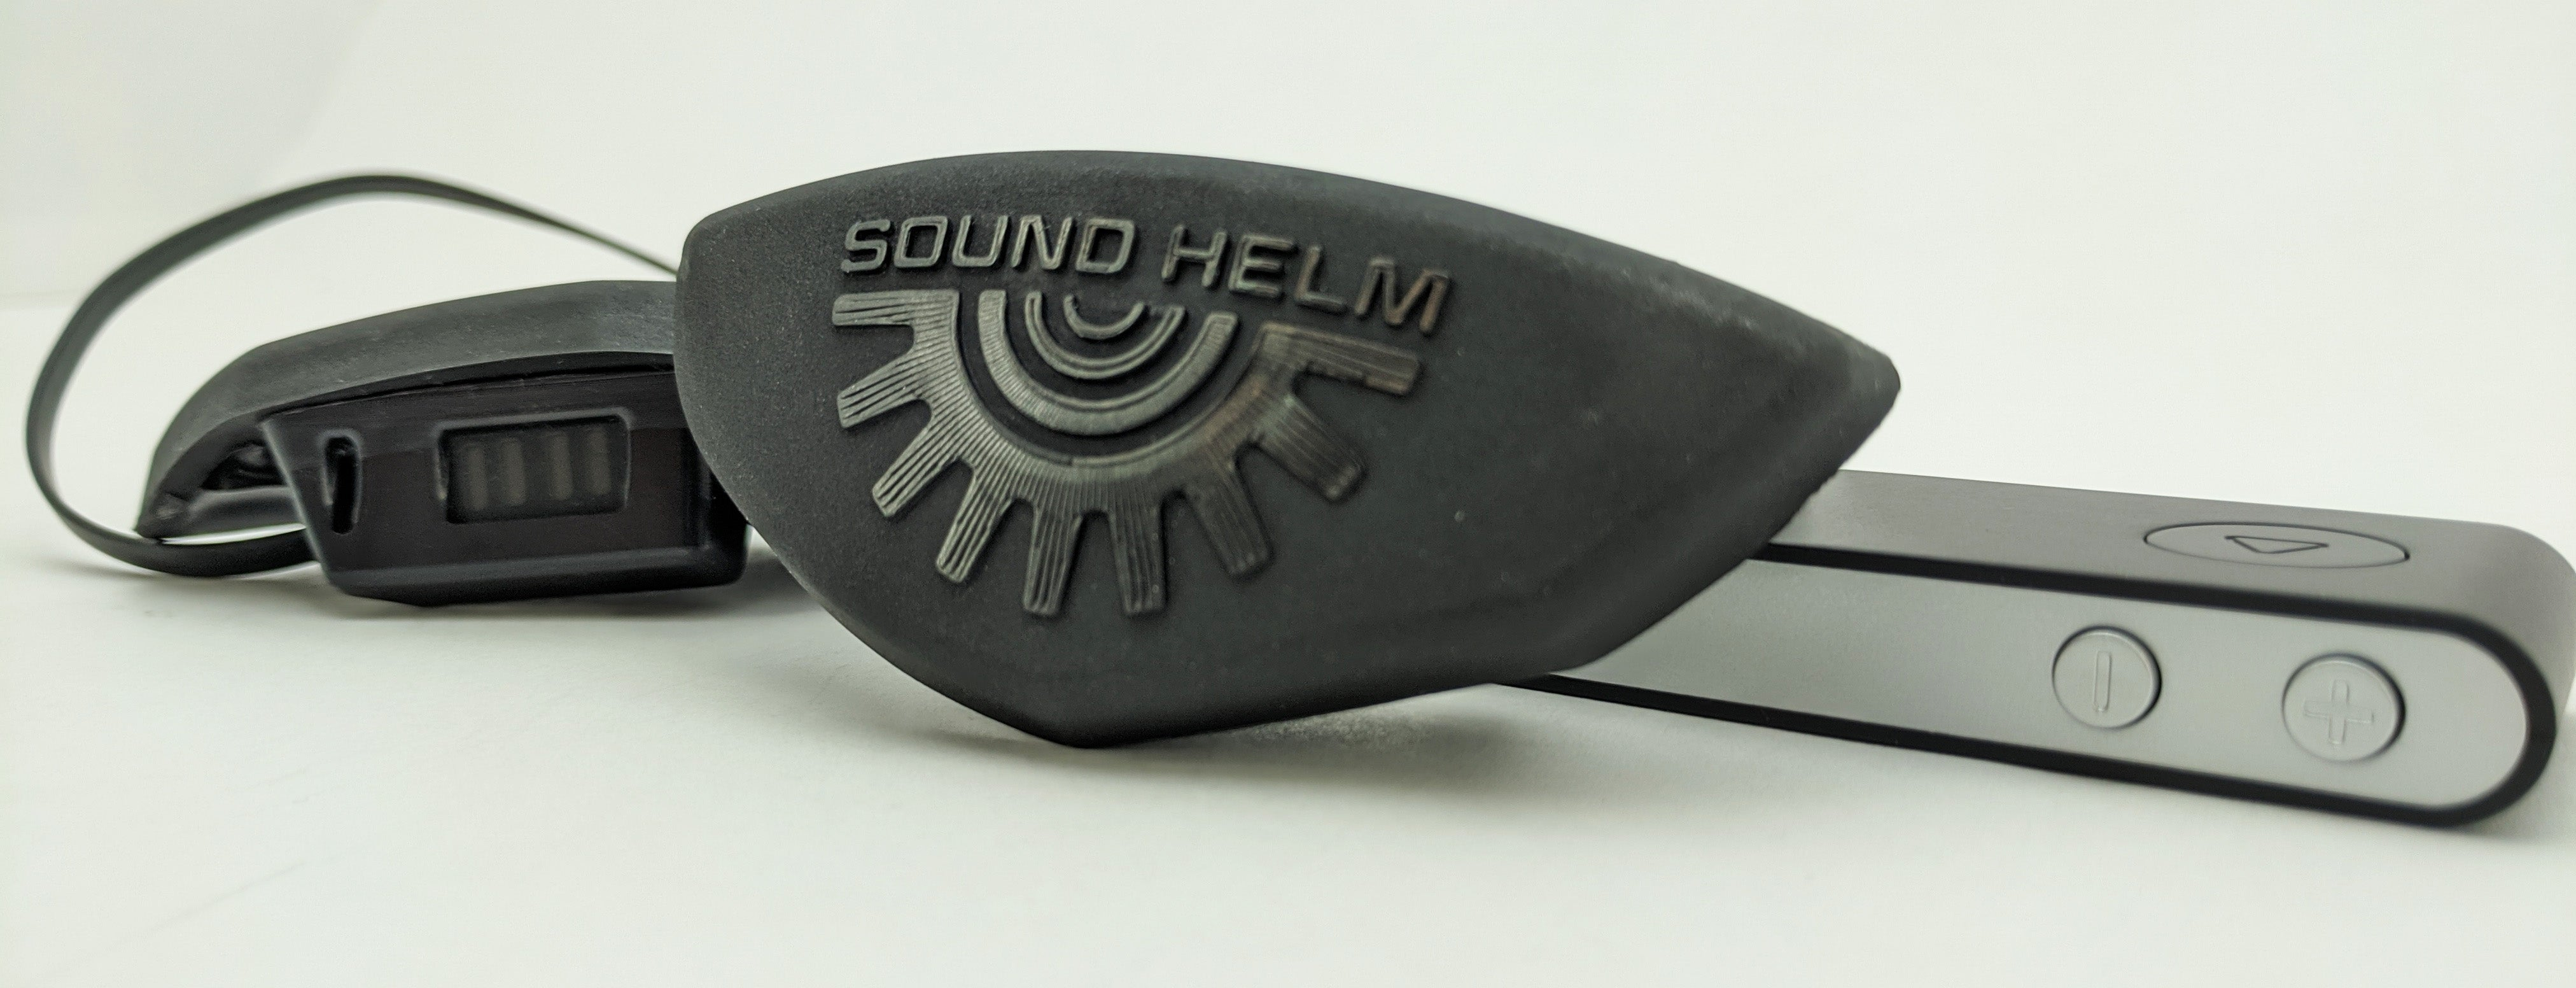 Where did the Sound Helm APHIX come from?